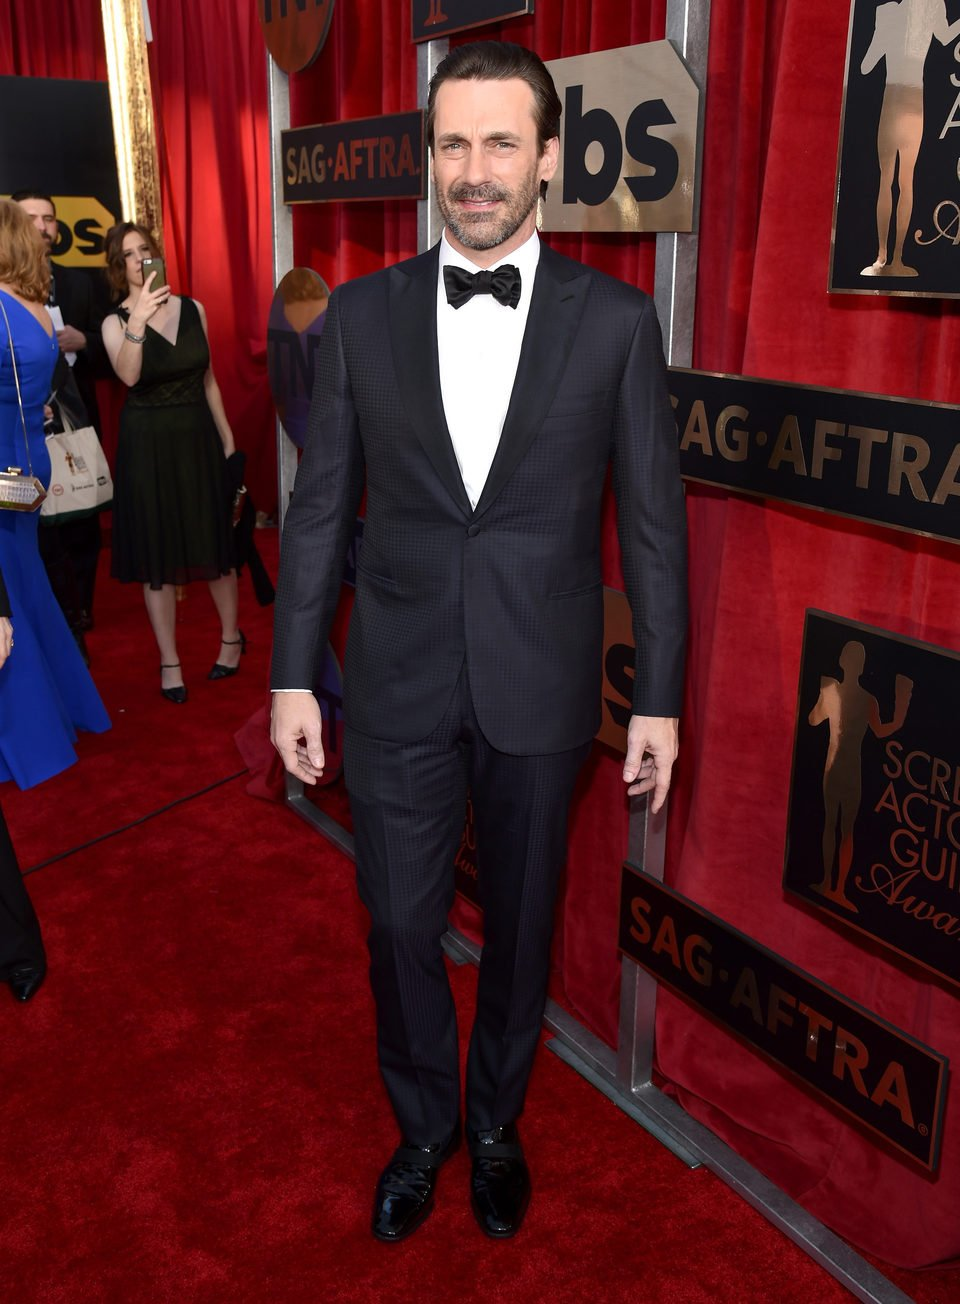 Jon Hamm in red carpet of 2016 SAG Awards